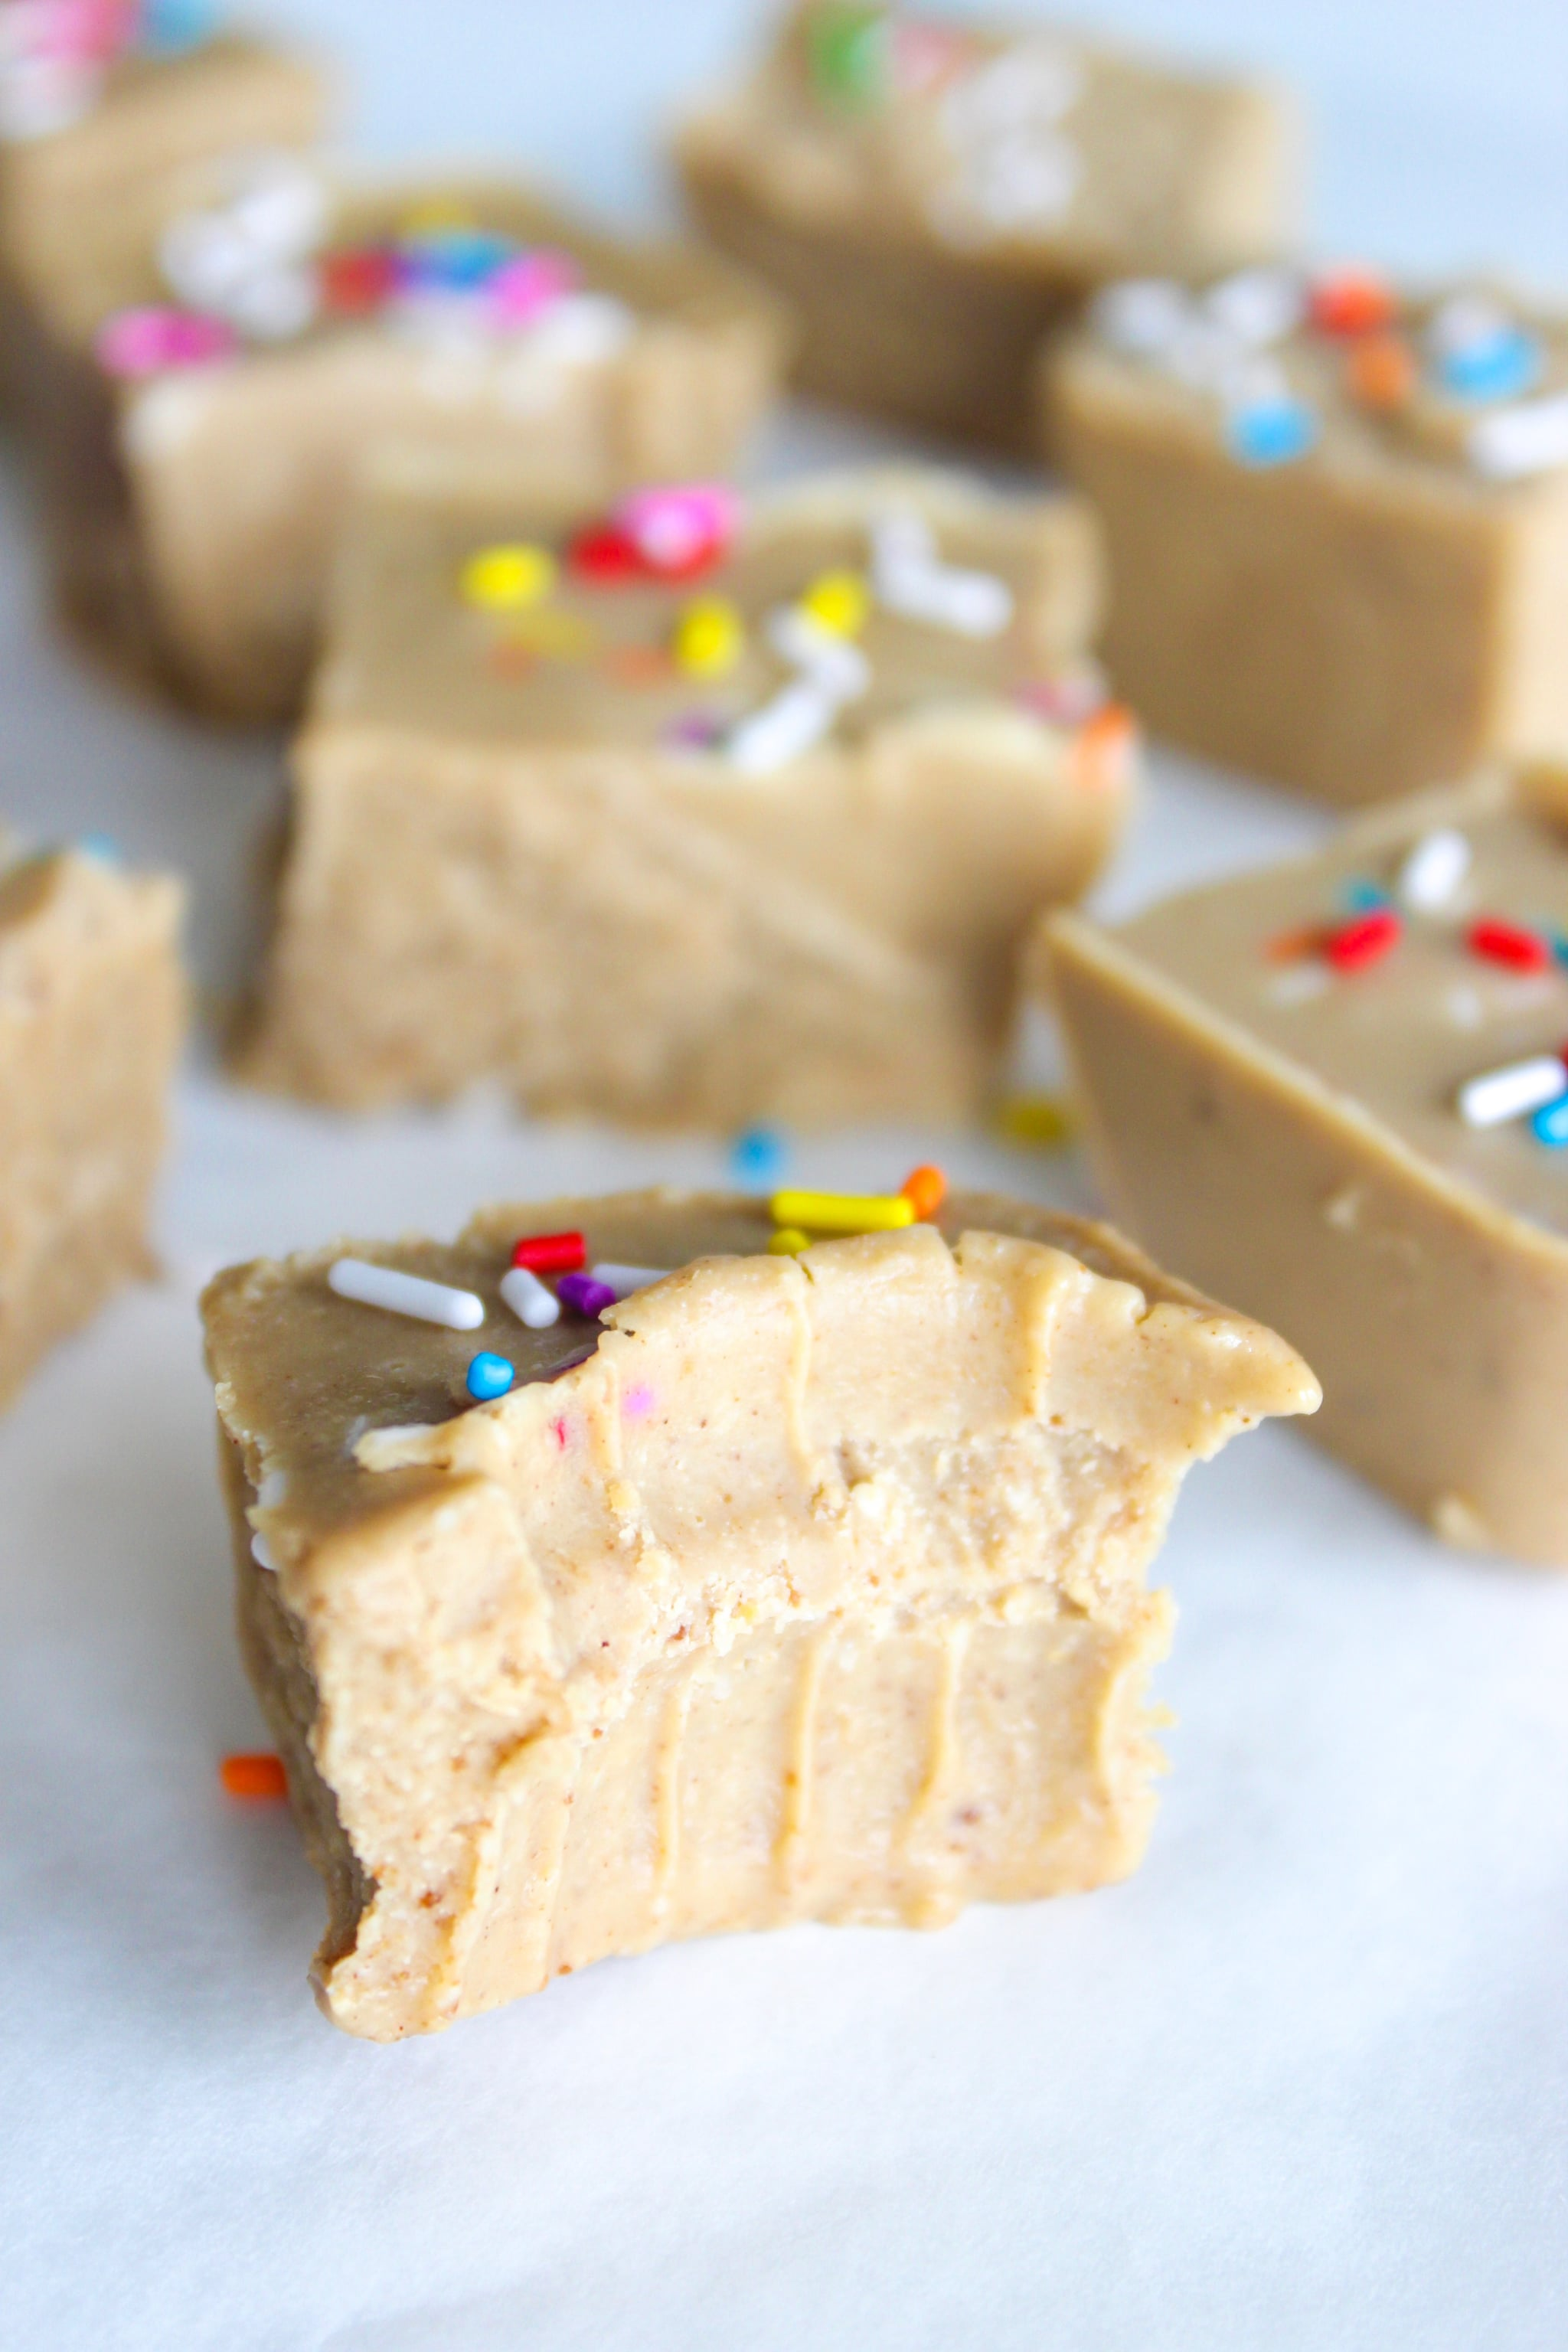 Combat Hunger and Cravings With This Adorable Keto Birthday Cake Fudge